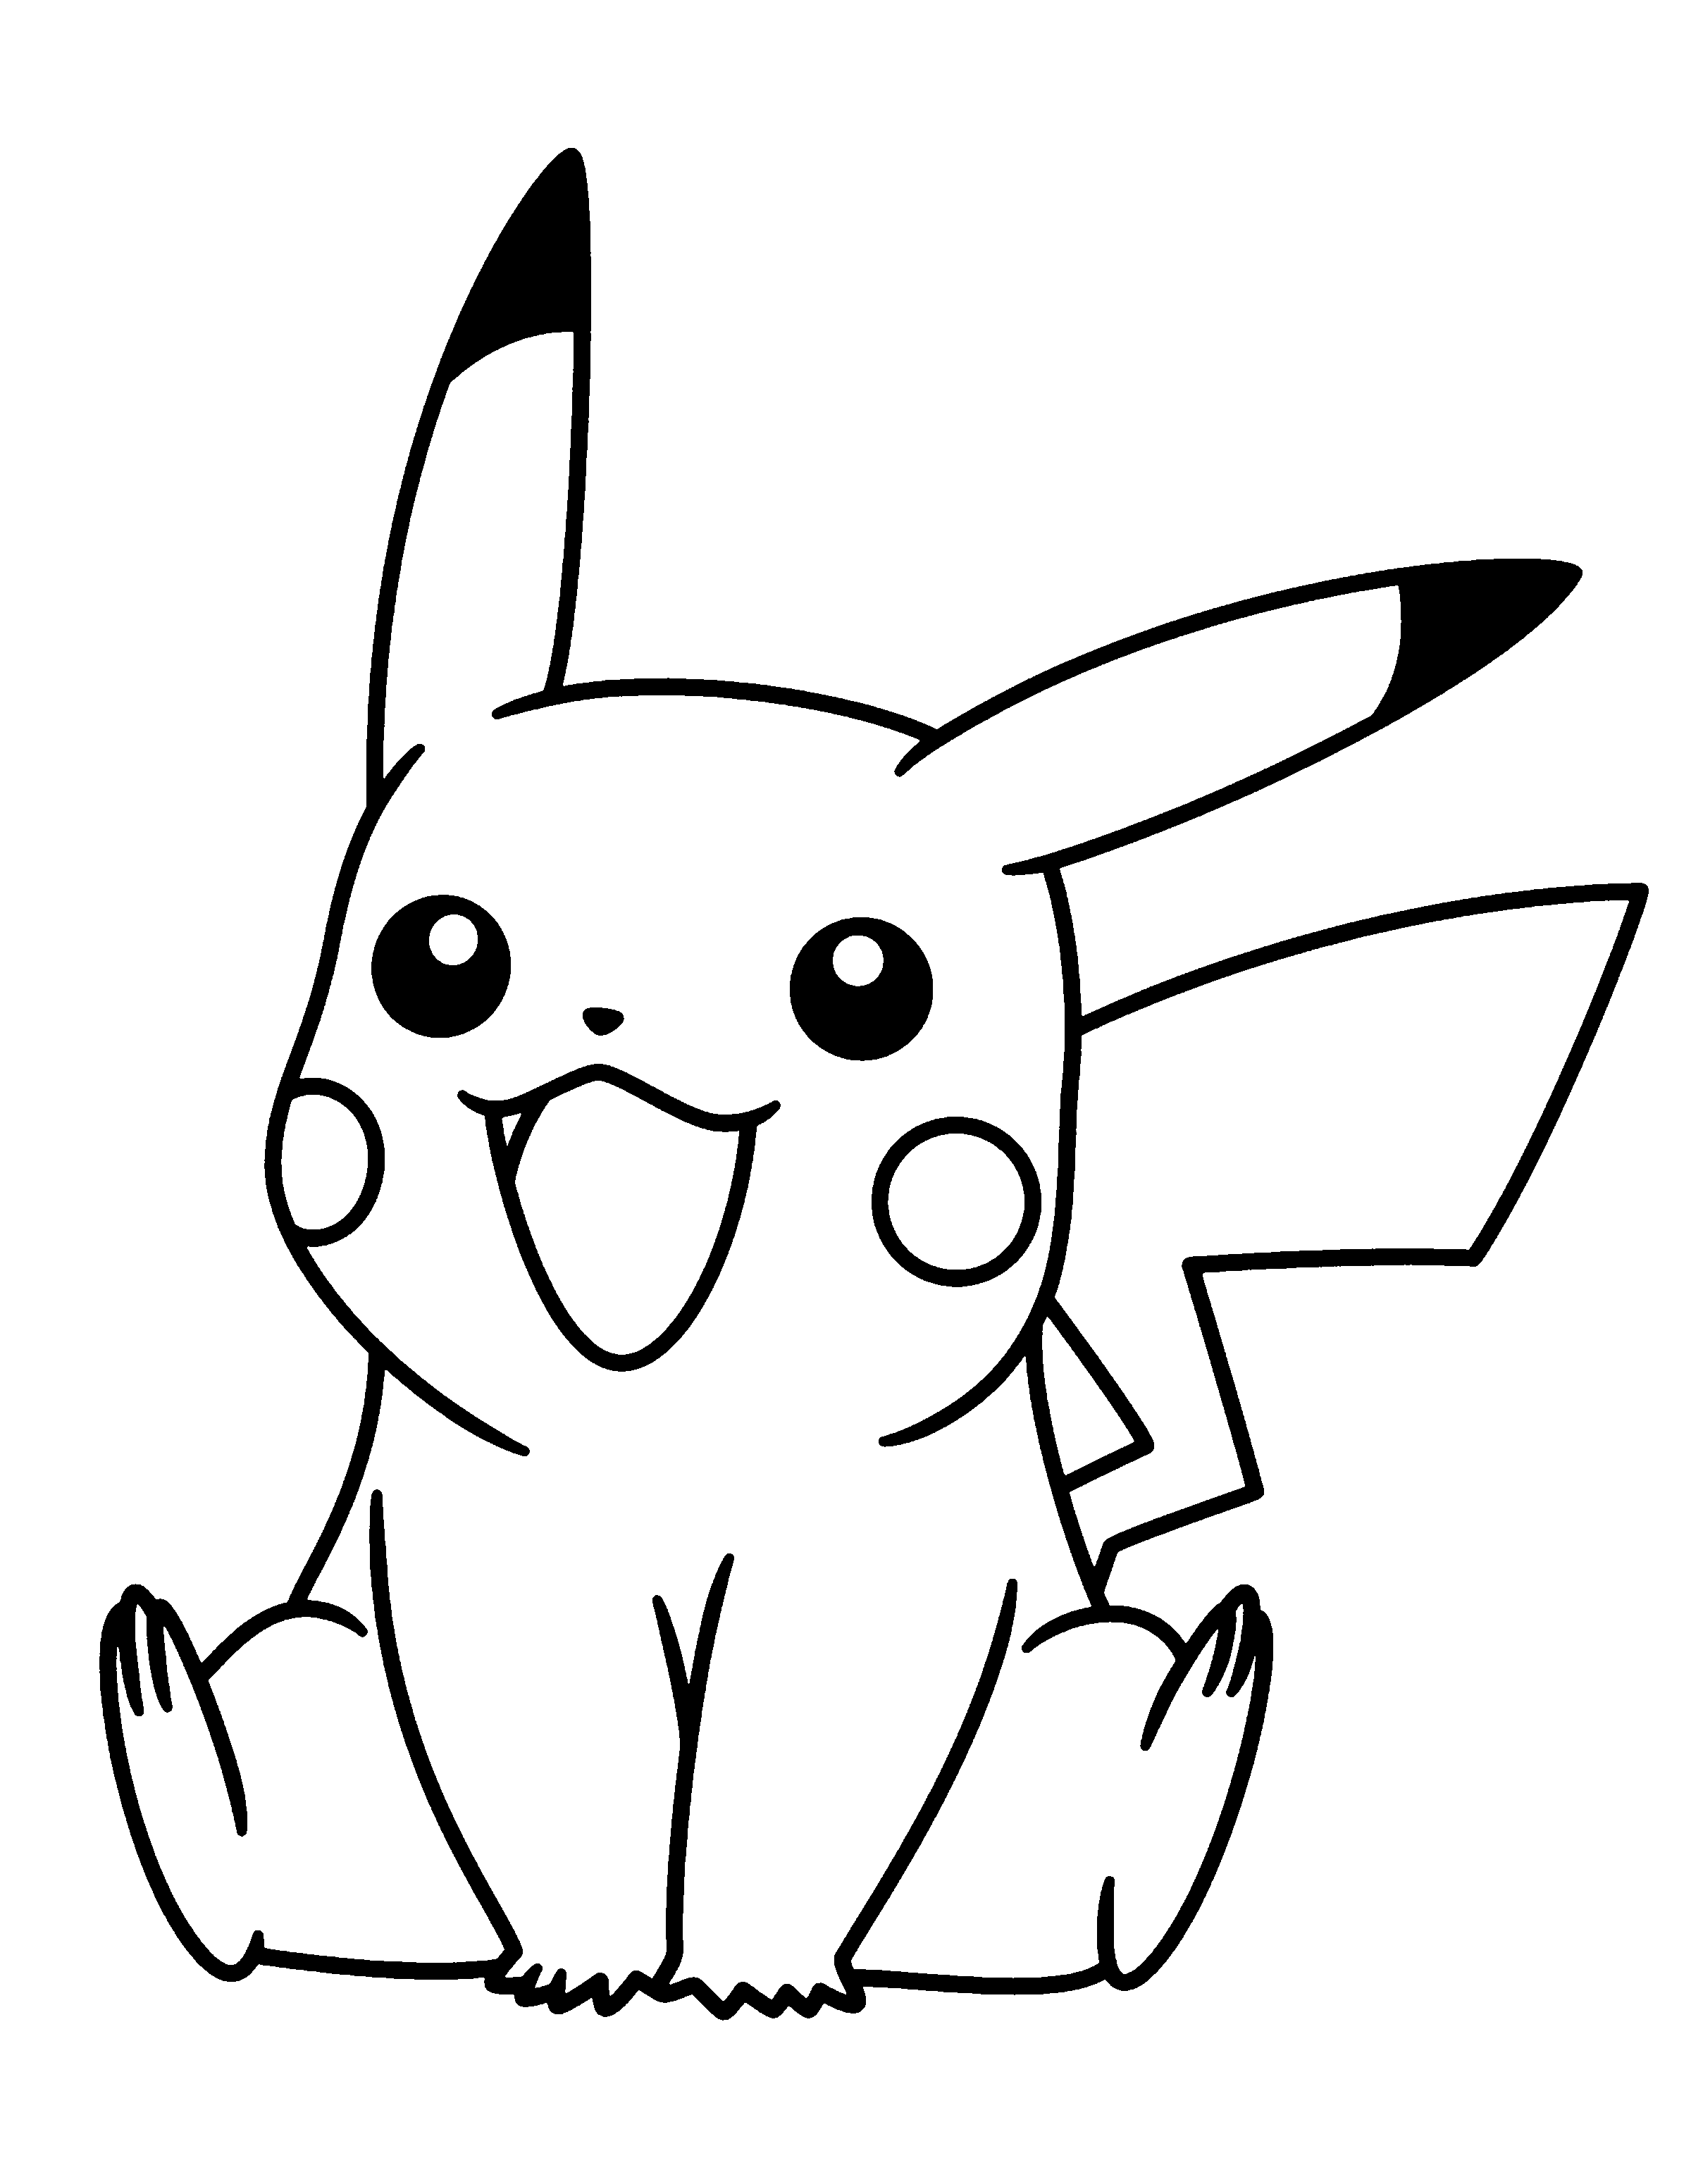 Pikachu Pokemon Coloring PagesADULT COLORING BOOK PAGESMore Pins Like This At FOSTERGINGER Pinterest Colouring PagesPikachu